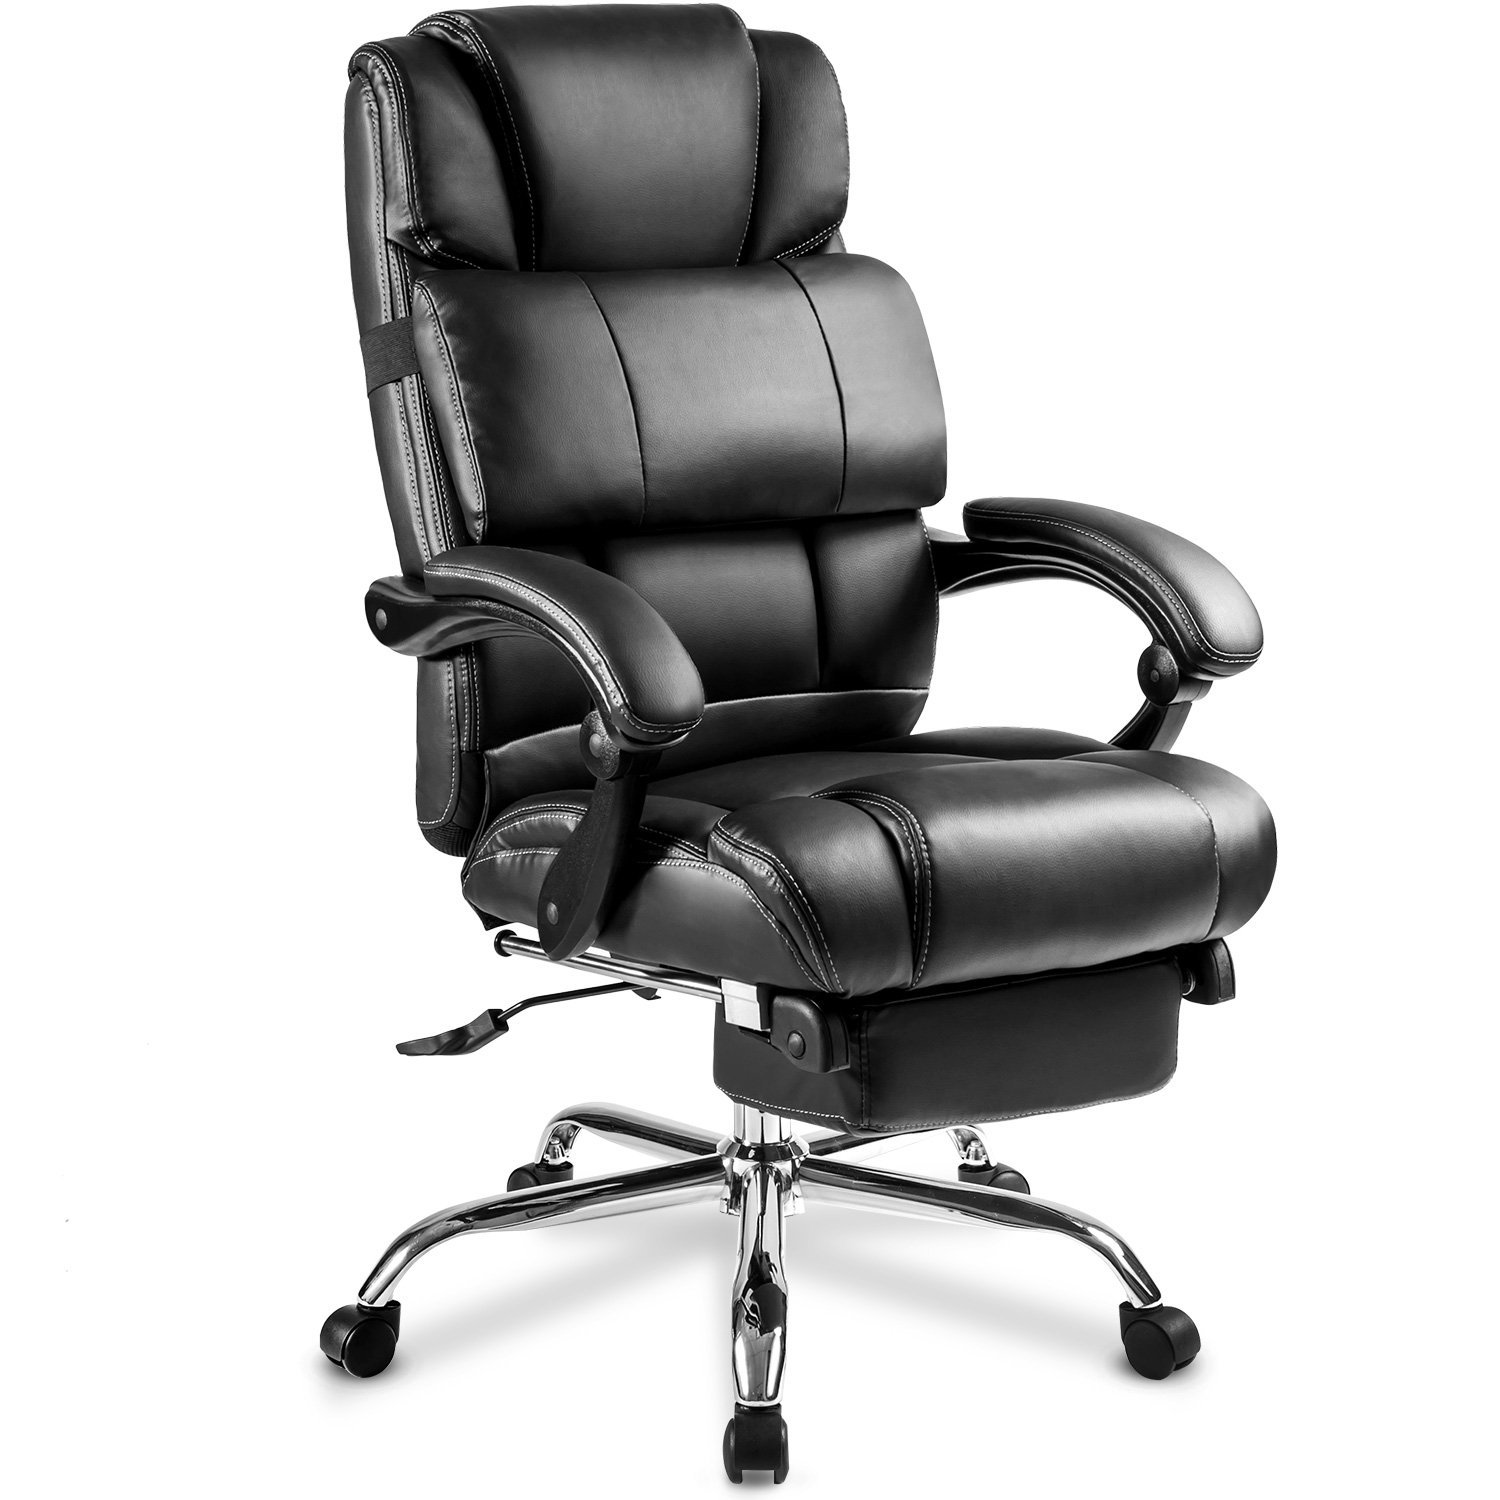 Merax Ergonomic Leather Big & Tall Office Chair with Footrest, Black